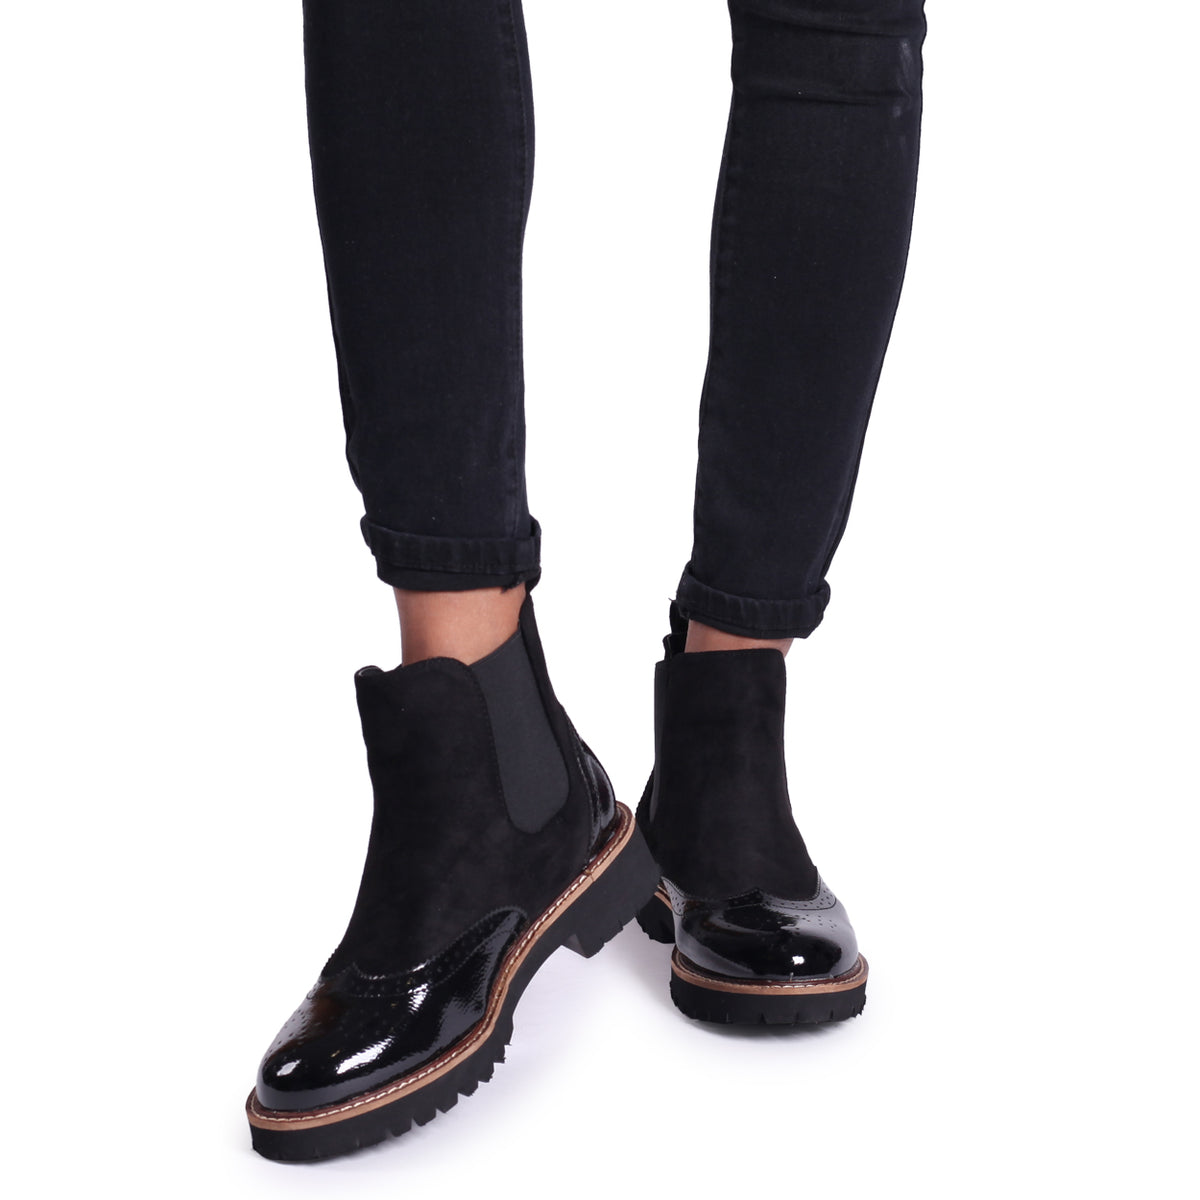 CLEO Black Patent /& Suede Brogue Style Chelsea Boot